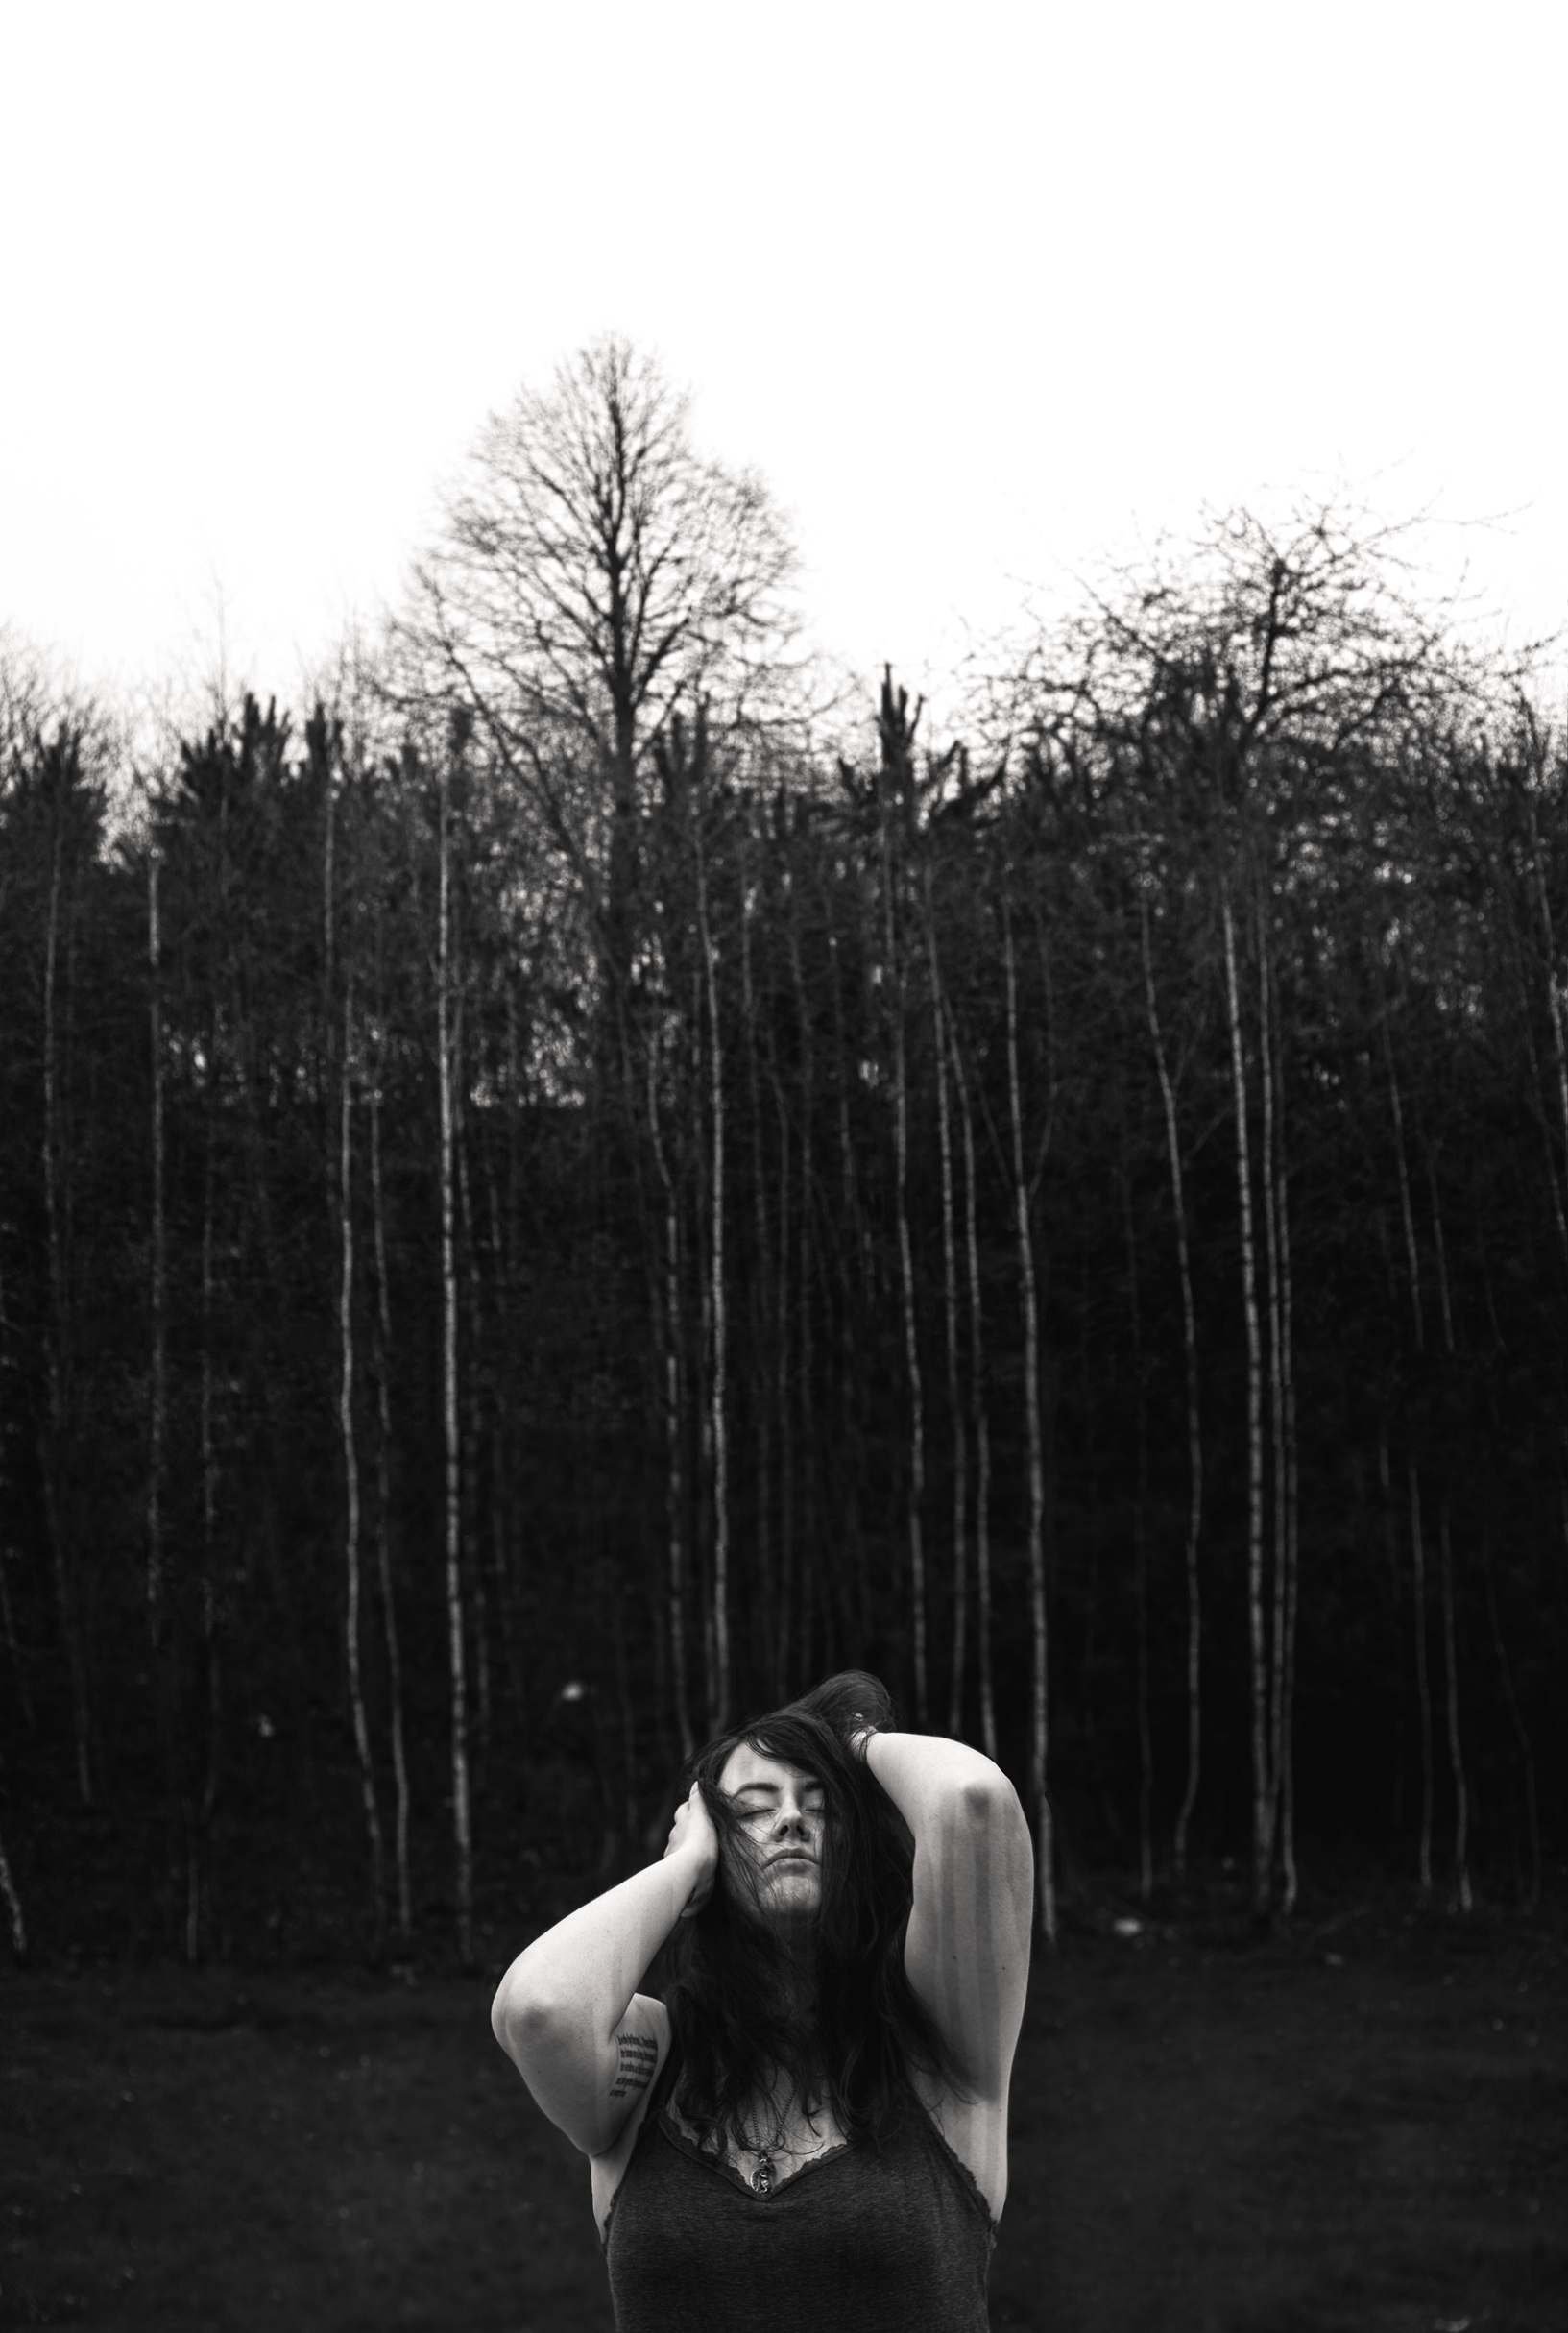 I'll-ask-the-birches-bw-web.jpg